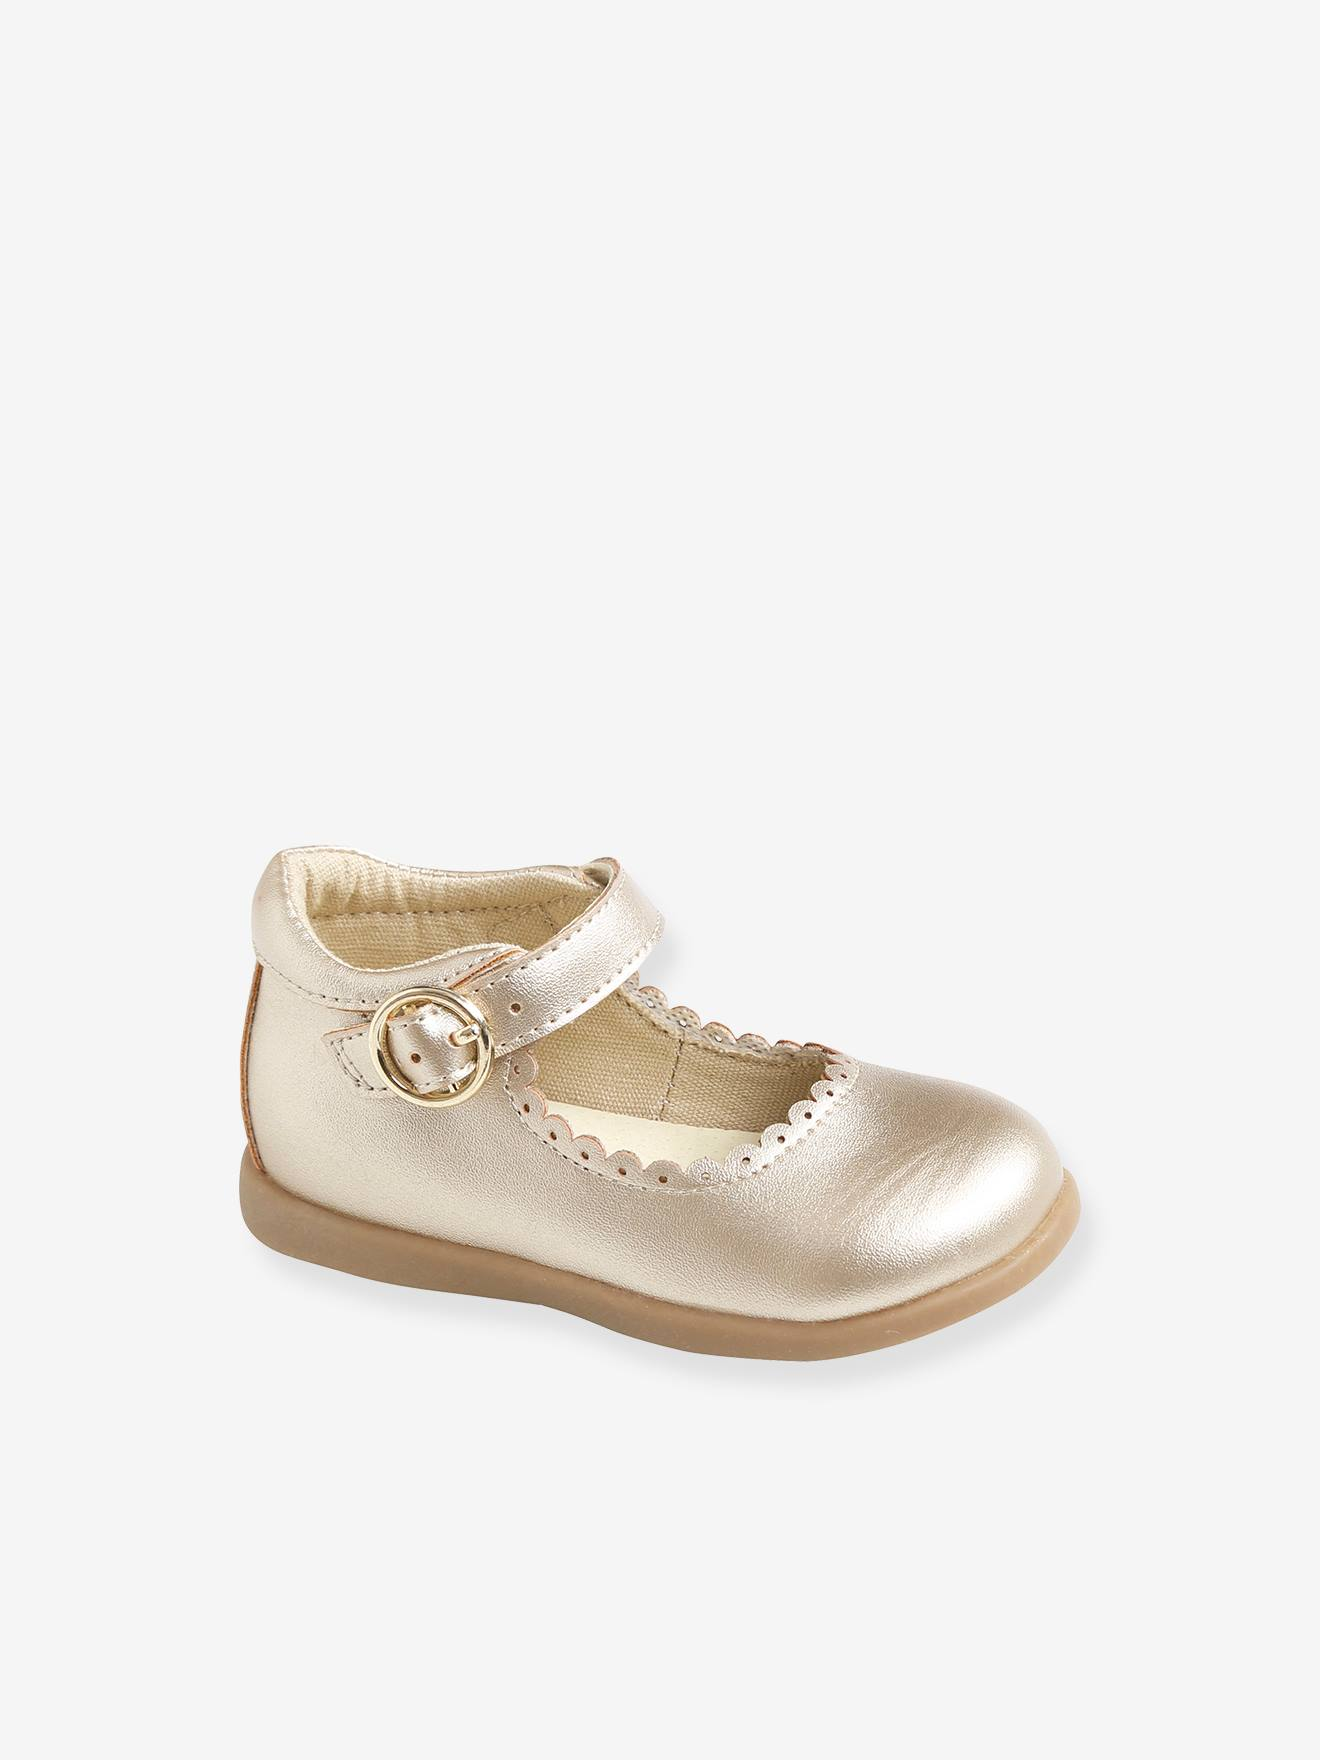 HXD Ballerines pour Fille